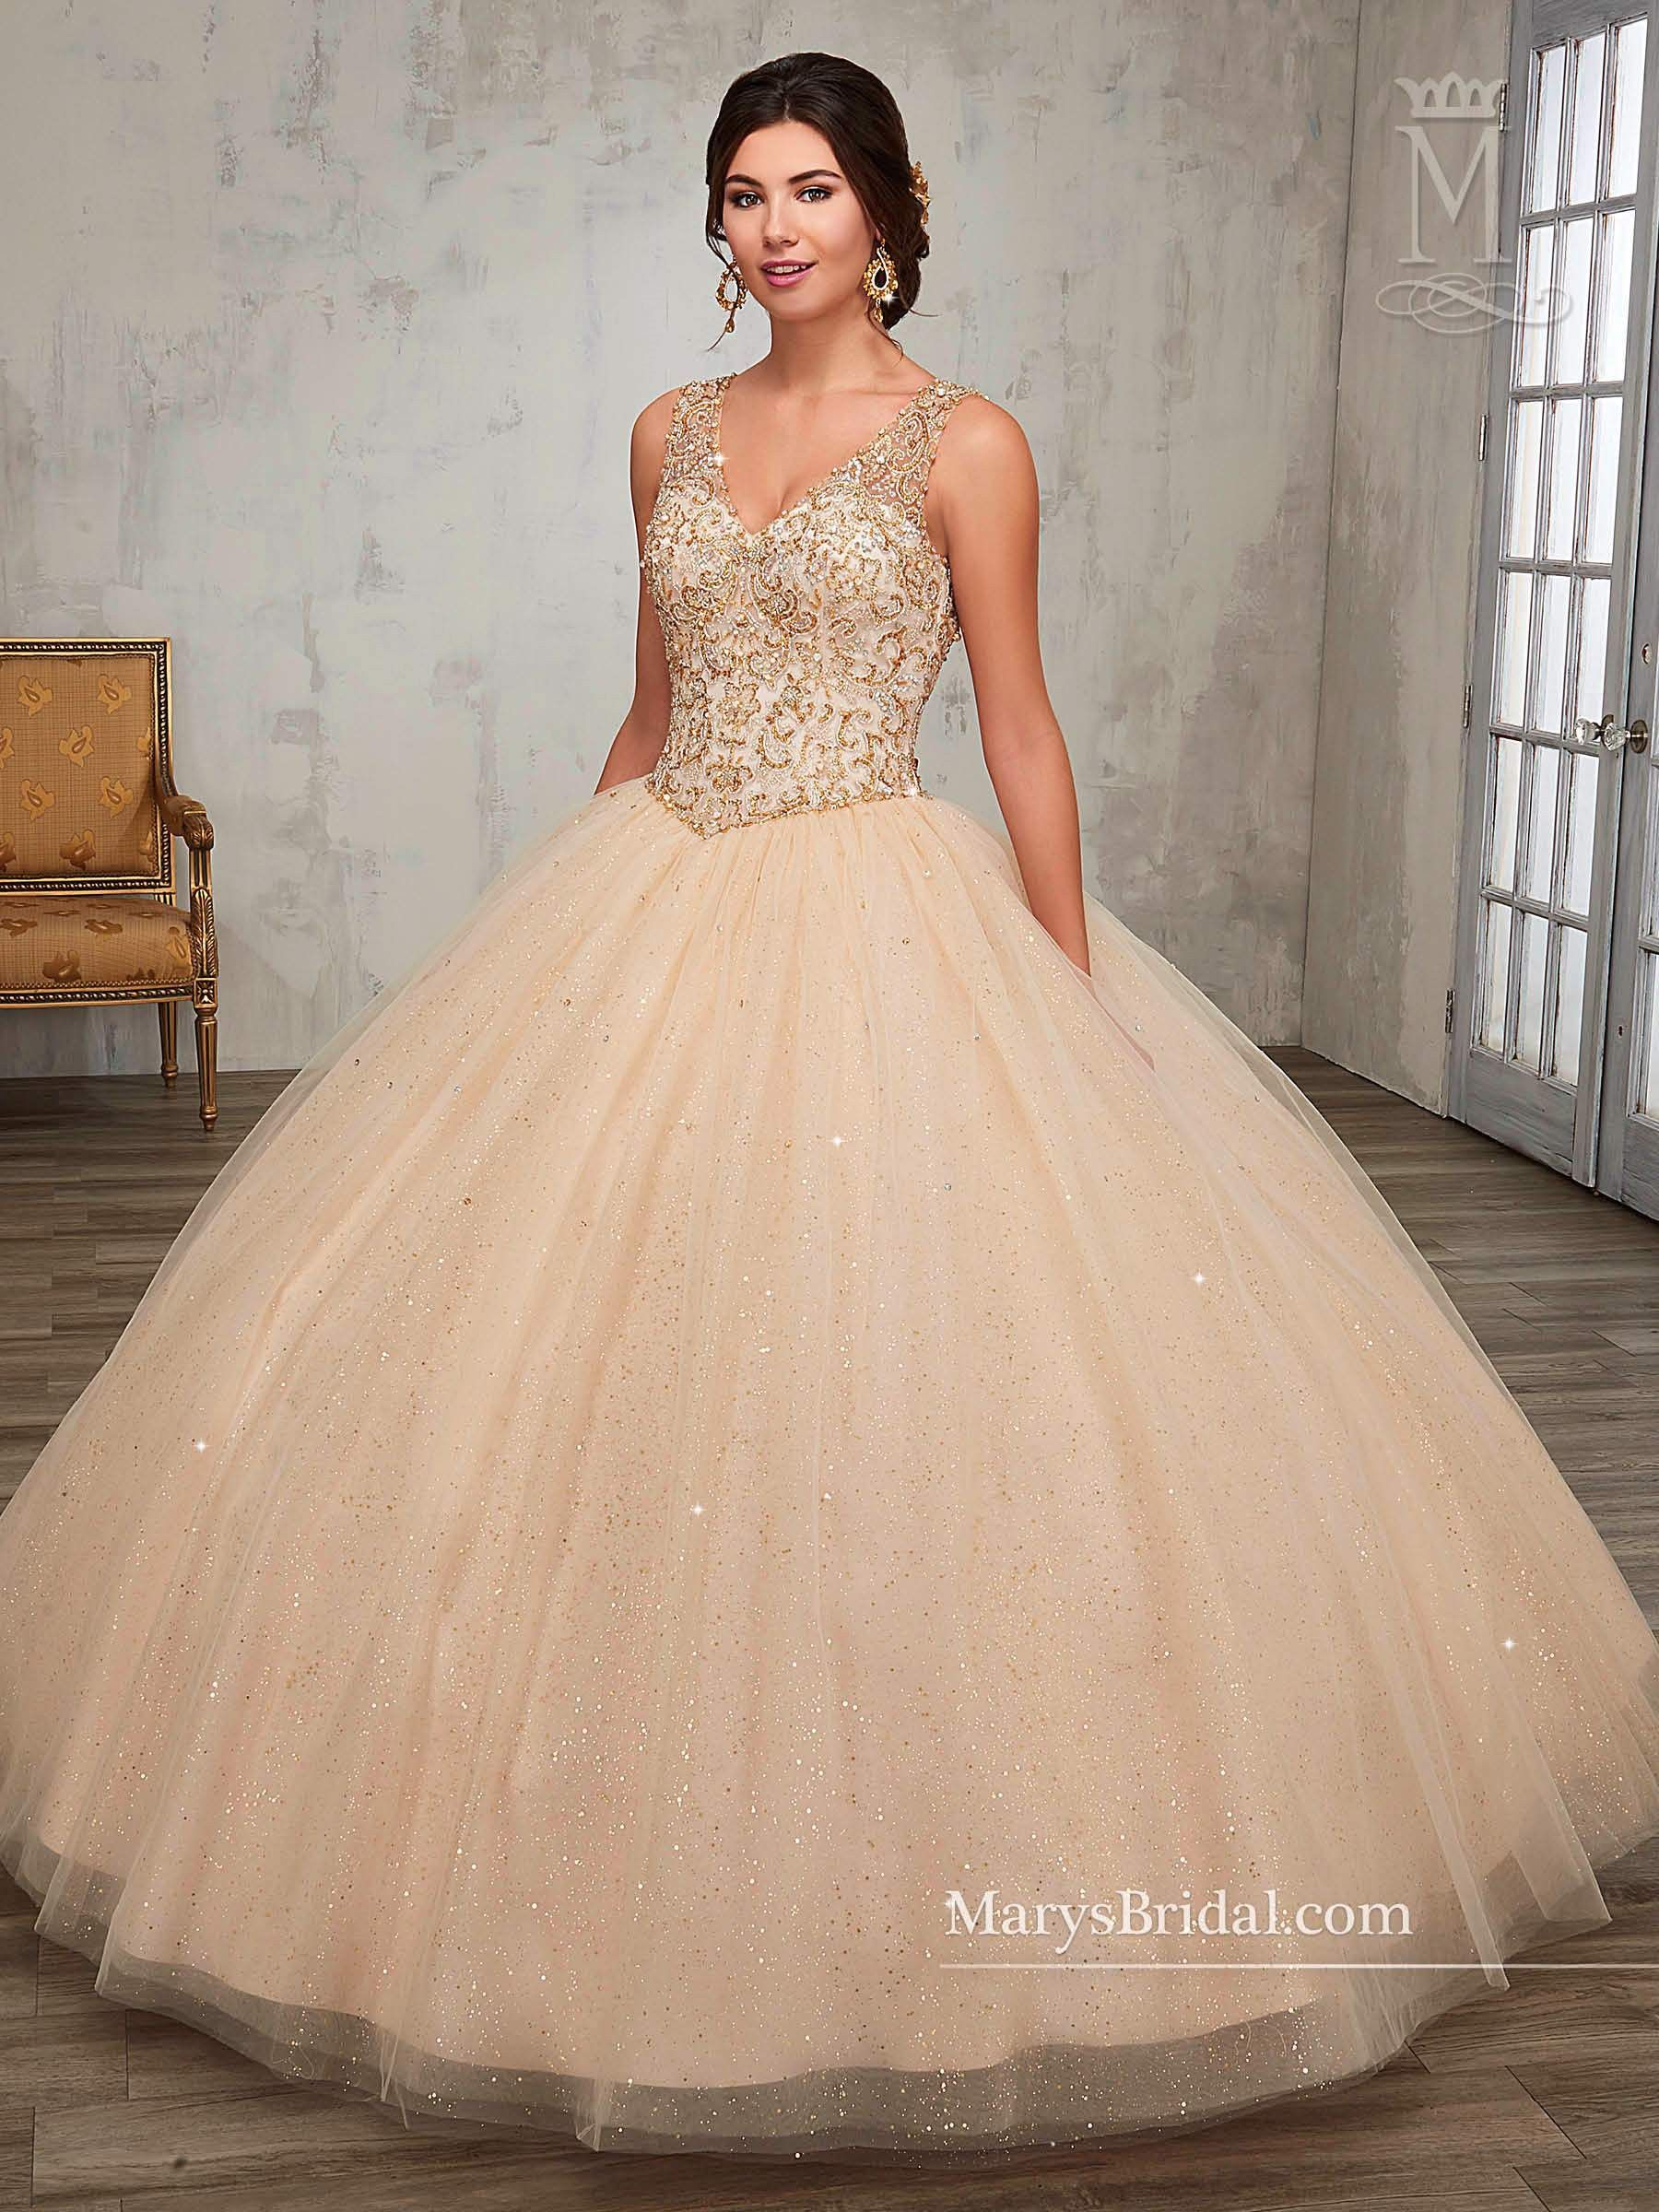 47dd263f549 Beaded A-line Quinceanera Dress by Mary s Bridal Princess 4Q511